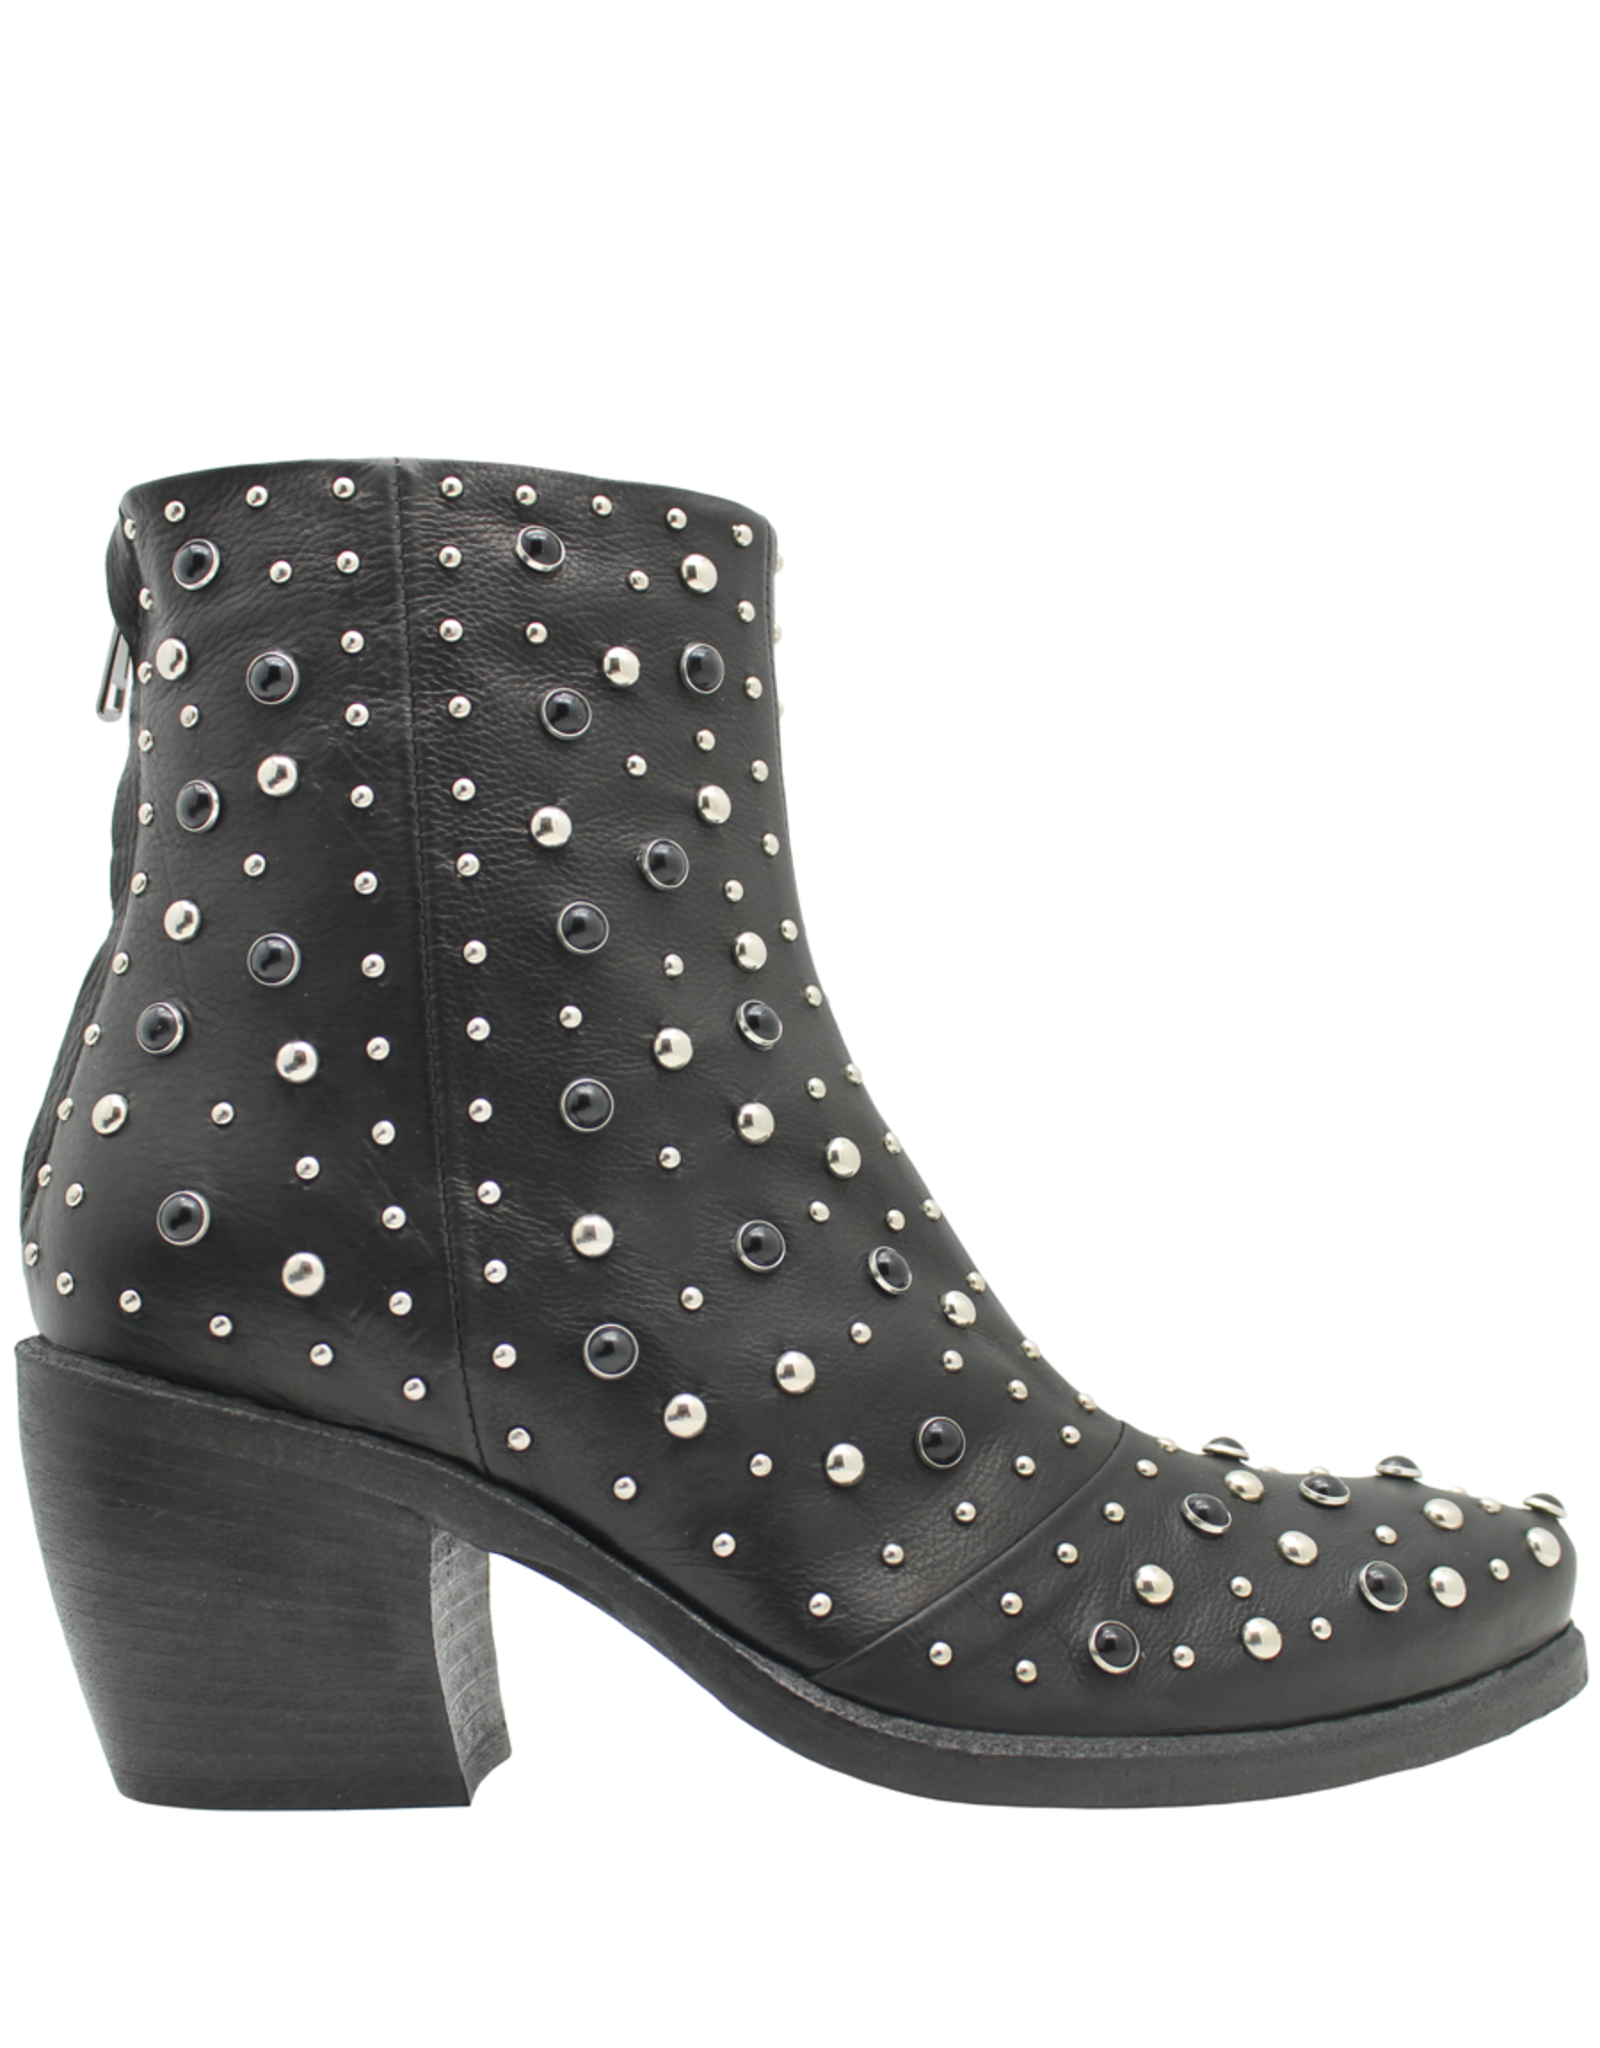 Now Now Black Multi Stud Back Zipper Boot 5861